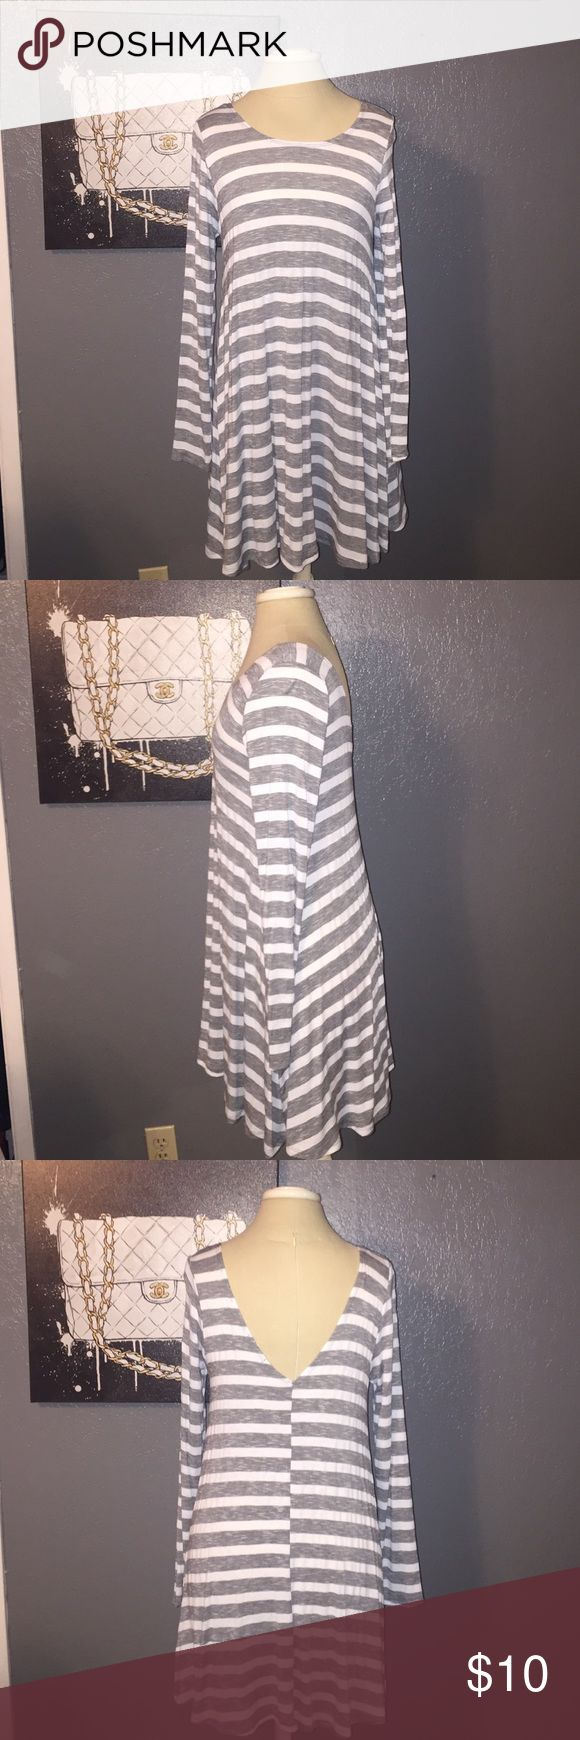 Striped Long Sleeve Flowy Dress White and grey stripes. Long sleeve. Crew neckline with plunging v in the back. Size medium. Relaxed fit. Unlined. Purchased at Wet Seal. Worn once. Wet Seal Dresses Long Sleeve